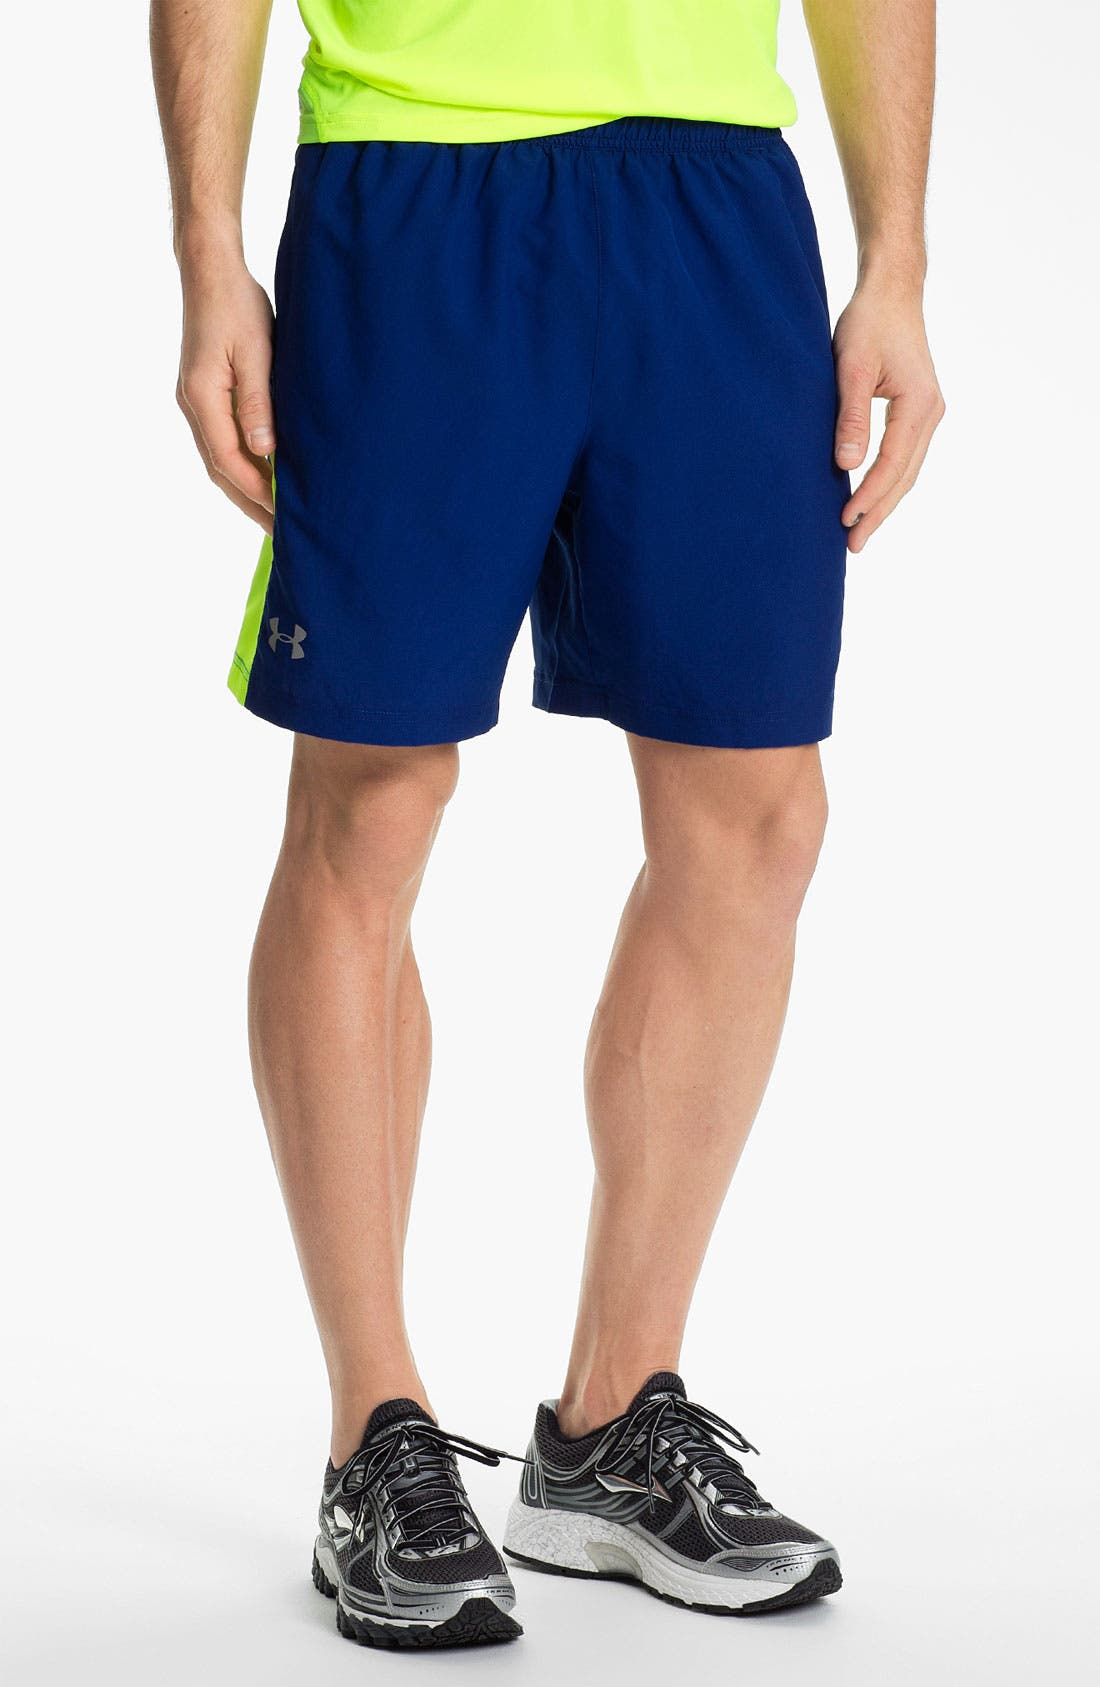 Alternate Image 1 Selected - Under Armour 'Shirtless Run' Shorts